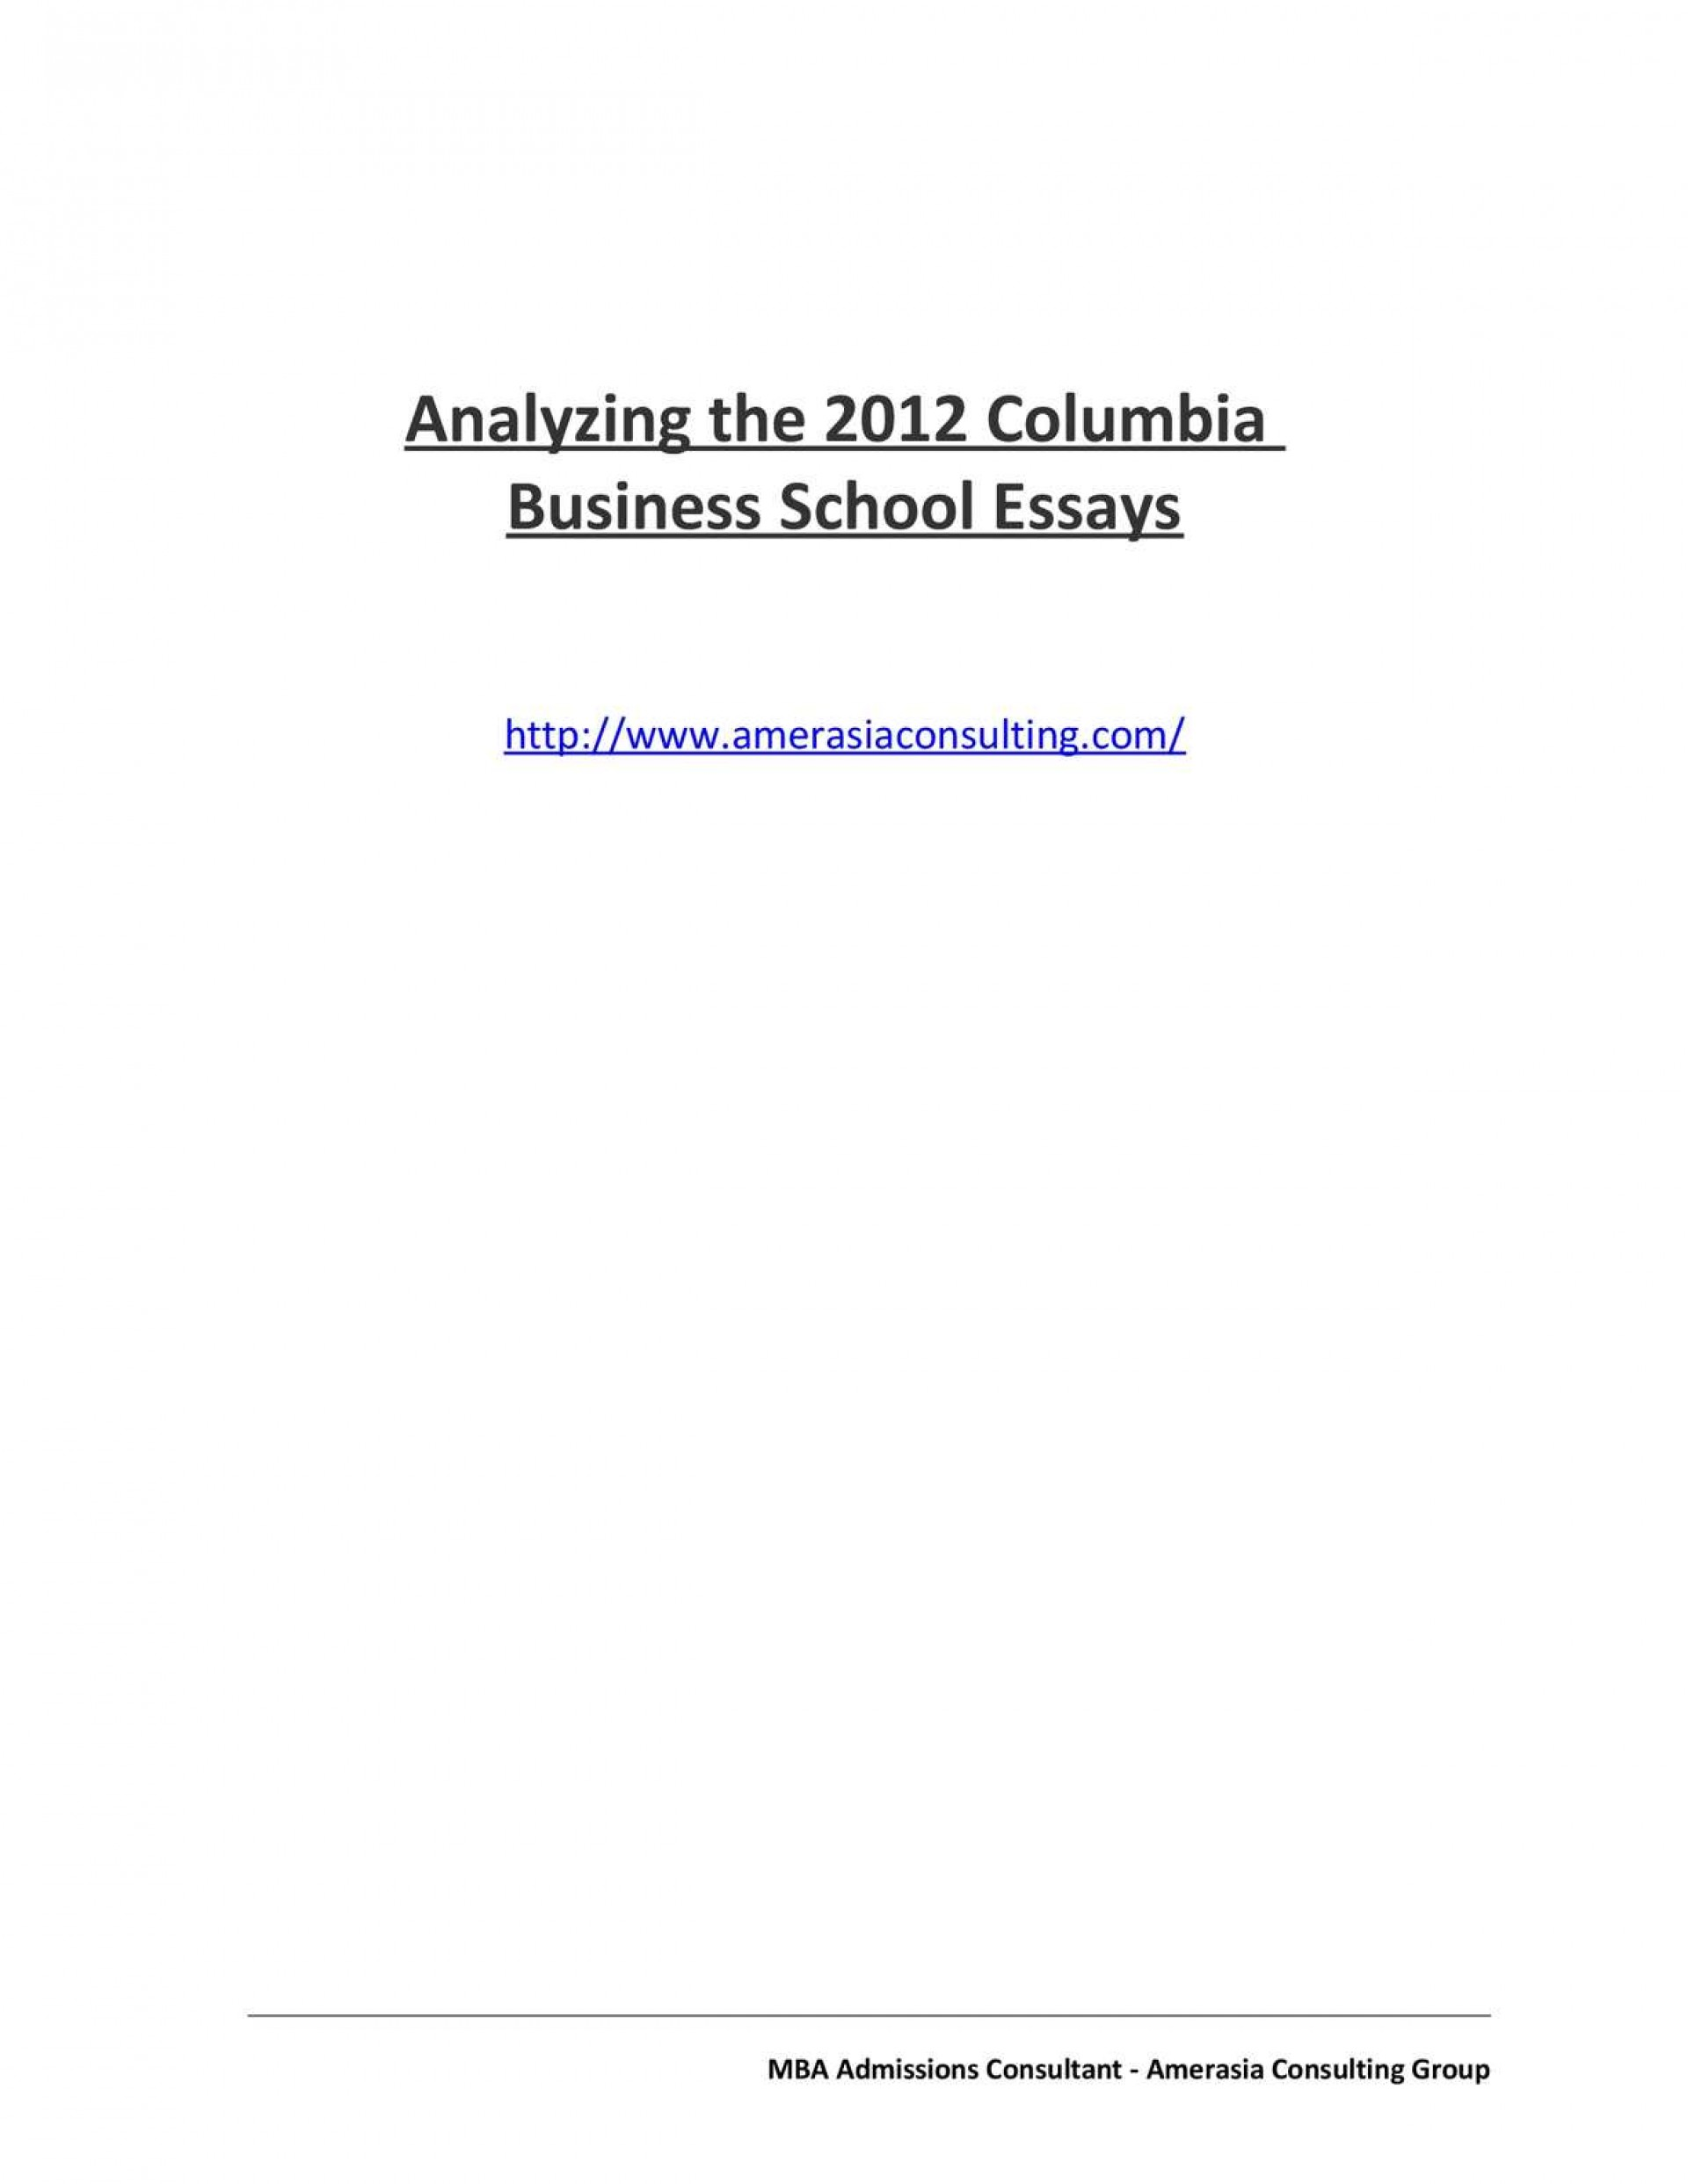 017 Essay Example Columbia Essays Analyzing The Business School Analys Admission Analysis Help Examples Shocking Mba That Worked Undergraduate 1920